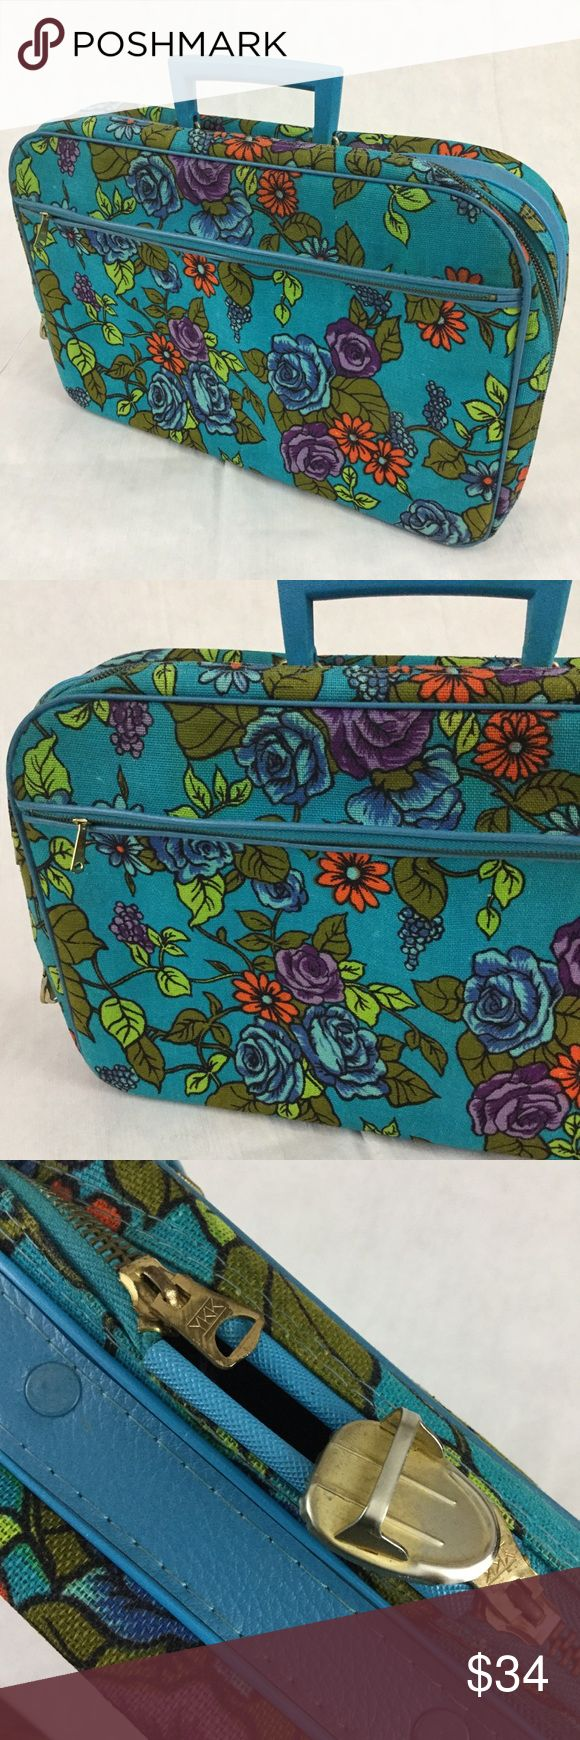 "Vintage floral daytrip weekender suitcase 60's Unique floral flower power printed vintage suitcase from the 60's. Minor spots as pictured from use over the years and the zipper no longer latches closed as one half of the lock is gone, it still zips closed though.  This can be used for a day trip, a weekender bag or a child's suitcase. Dimensions are 17"" Across, 11"" Tall, 3.75"" deep YKK (vintage) Bags Travel Bags"